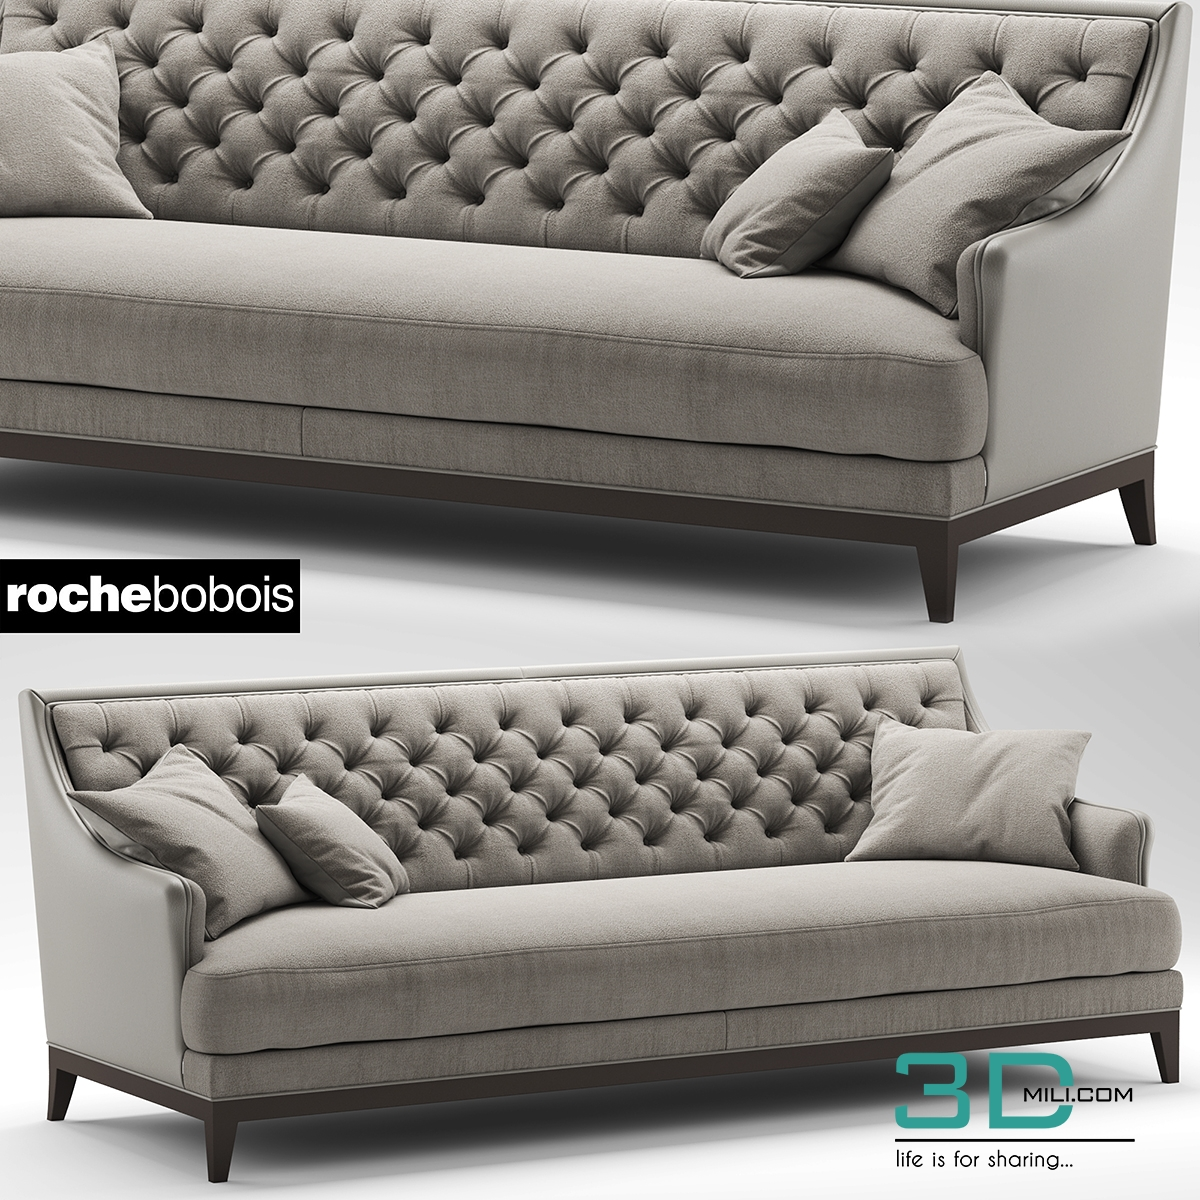 288 sofa fauteuil epoq roche bobois 3d mili download 3d model free 3d models 3d model. Black Bedroom Furniture Sets. Home Design Ideas